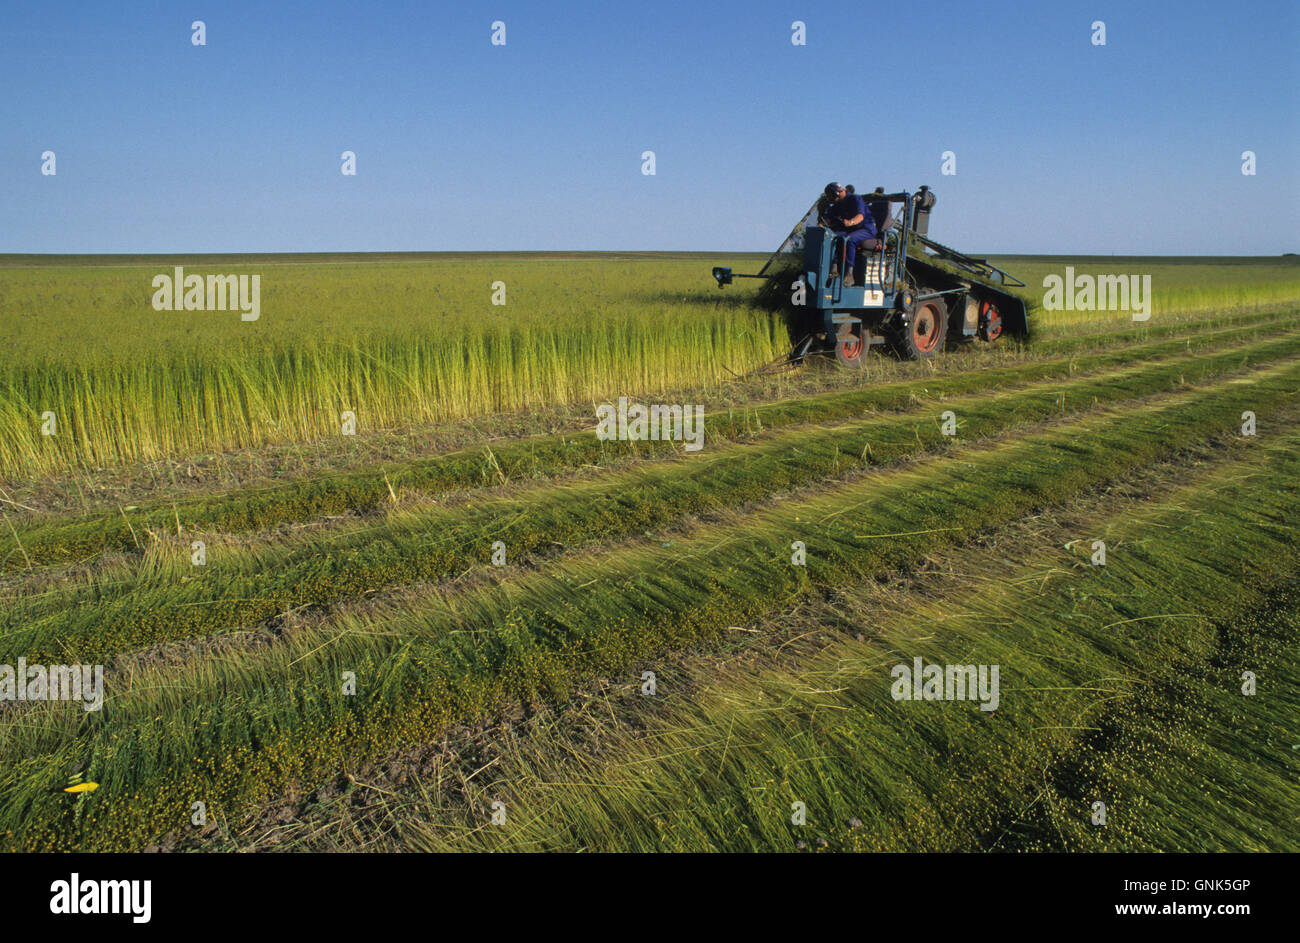 GERMANY, Pellworm, harvest of flax with machine, the natural fibre is used for textiles - Stock Image